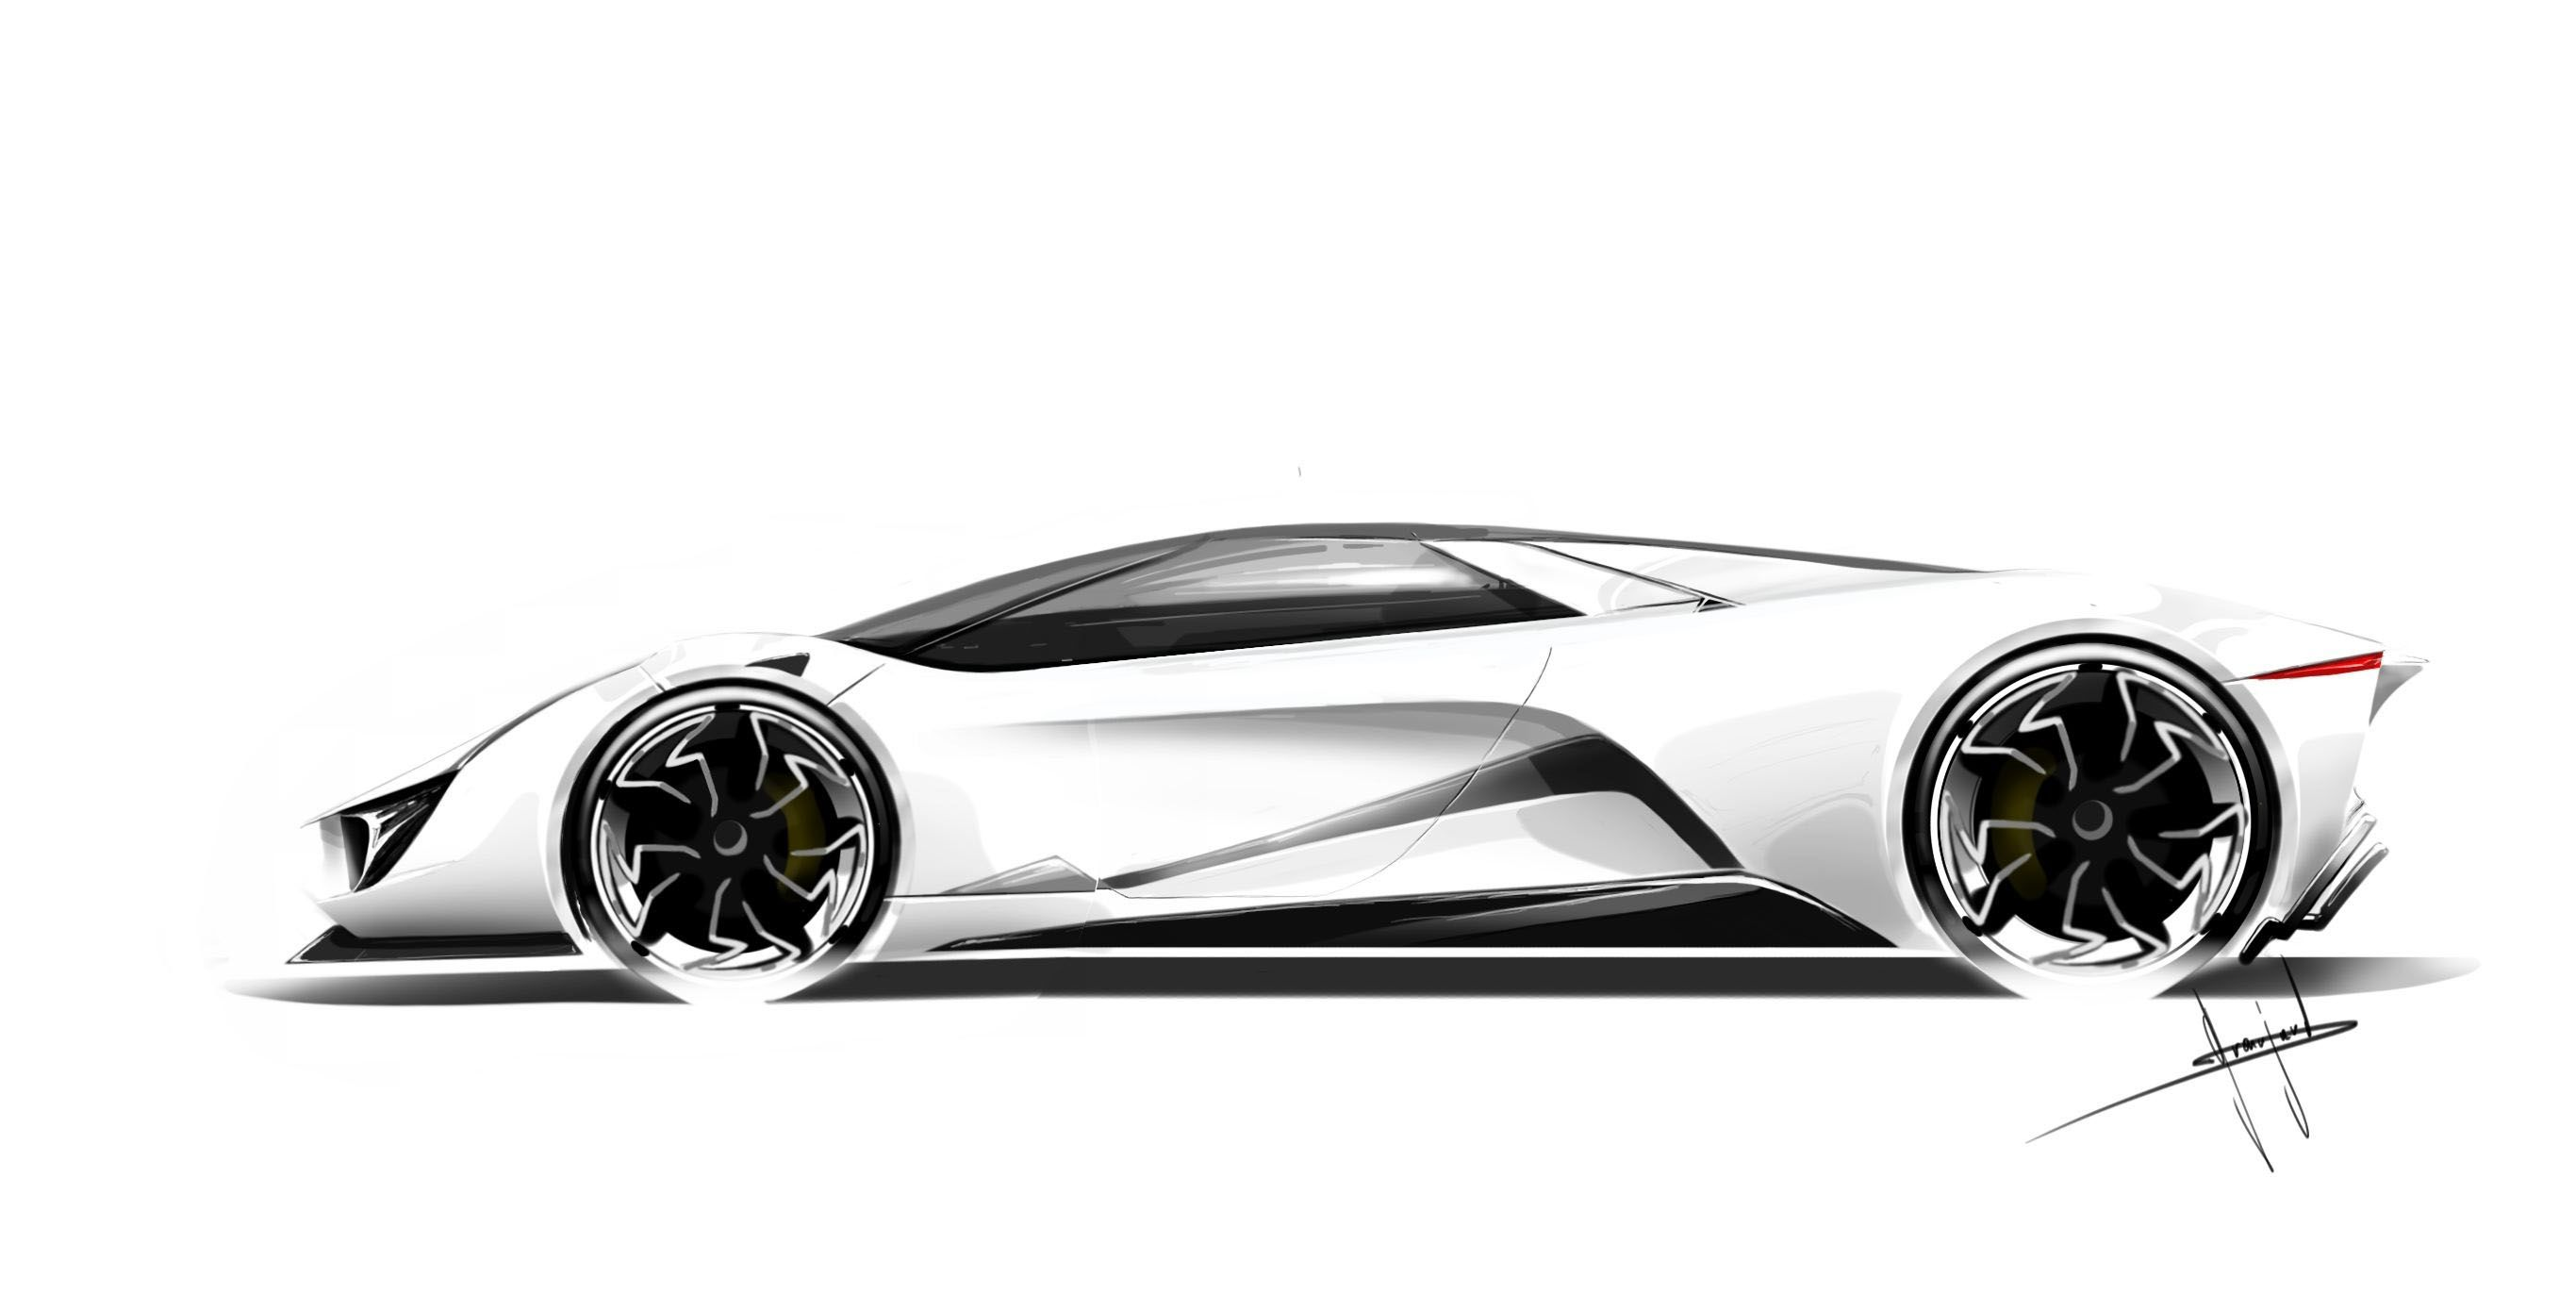 Lola Supercar Electric Engine Turbines Futuristic Cars Concept Car Design Concept Cars